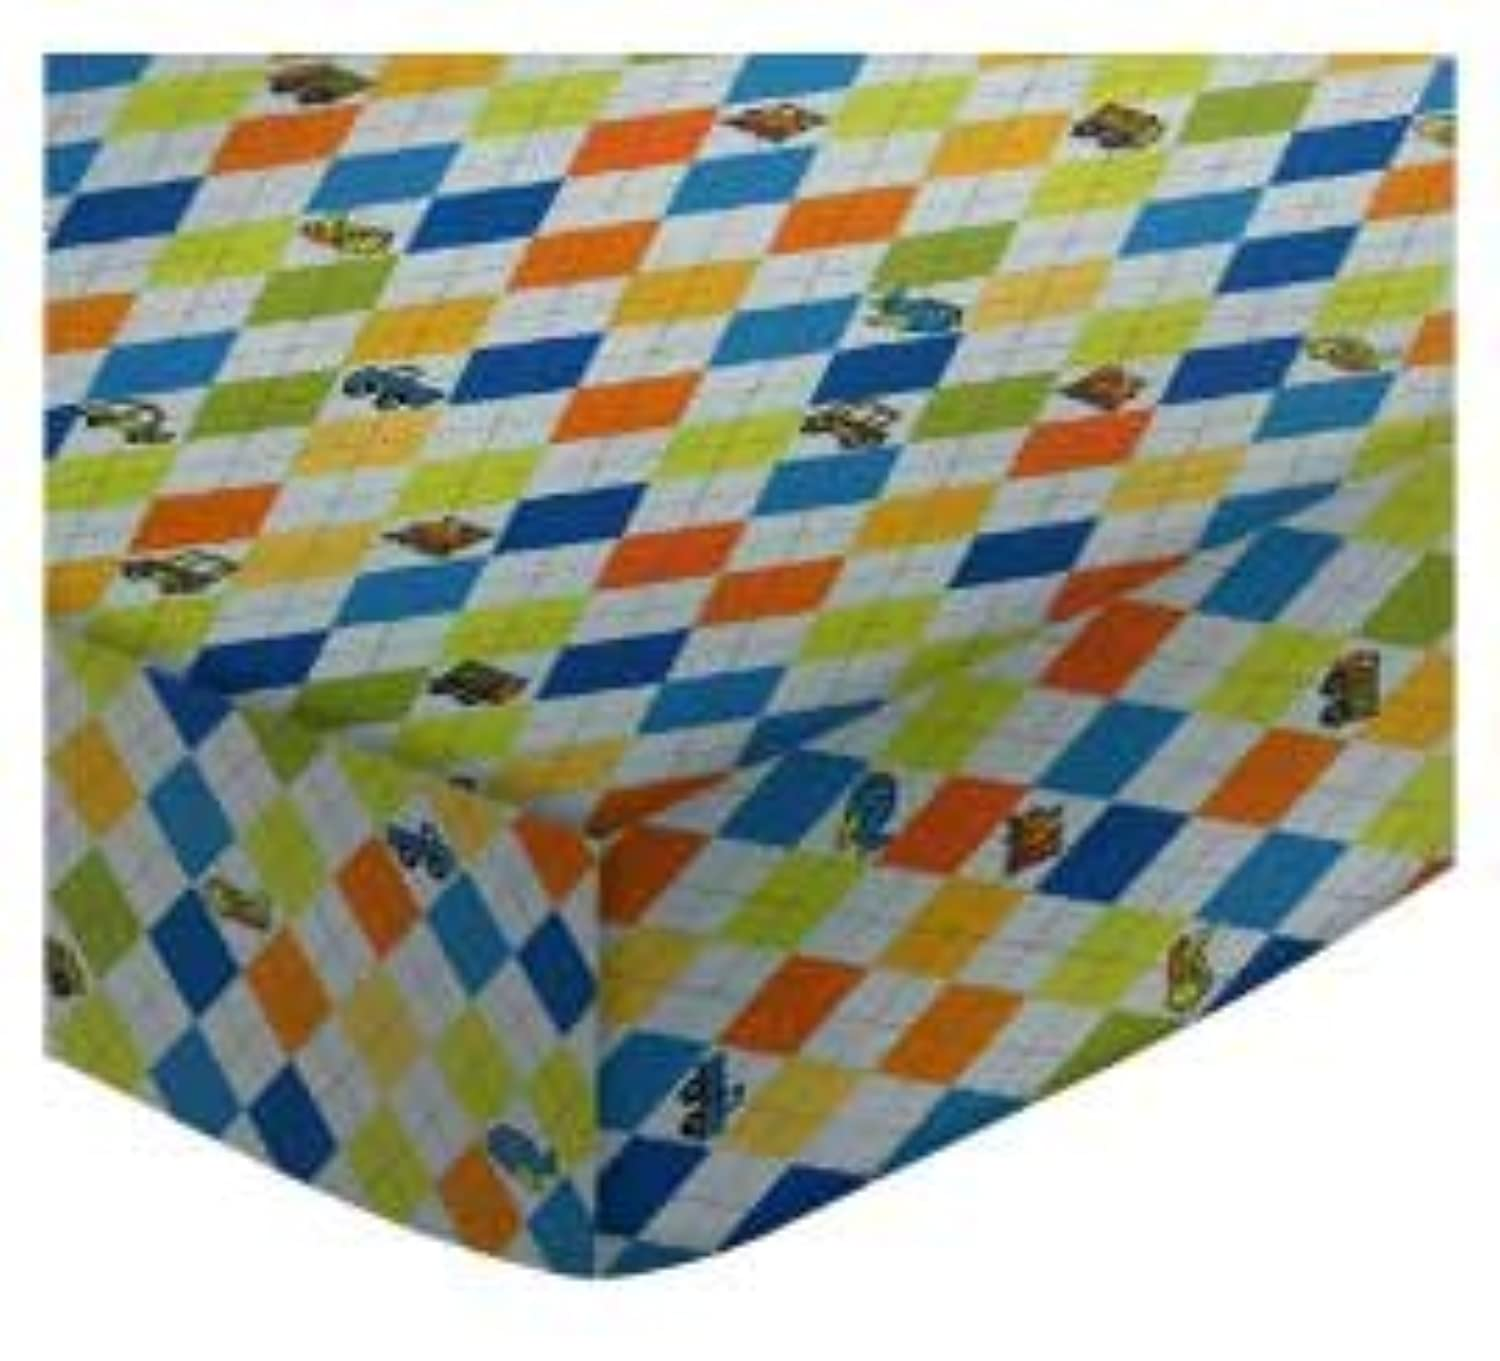 SheetWorld Fitted Square Playard Sheet 37.5 x 37.5 (Fits Joovy) - Argyle Blue Transport - Made In USA by sheetworld